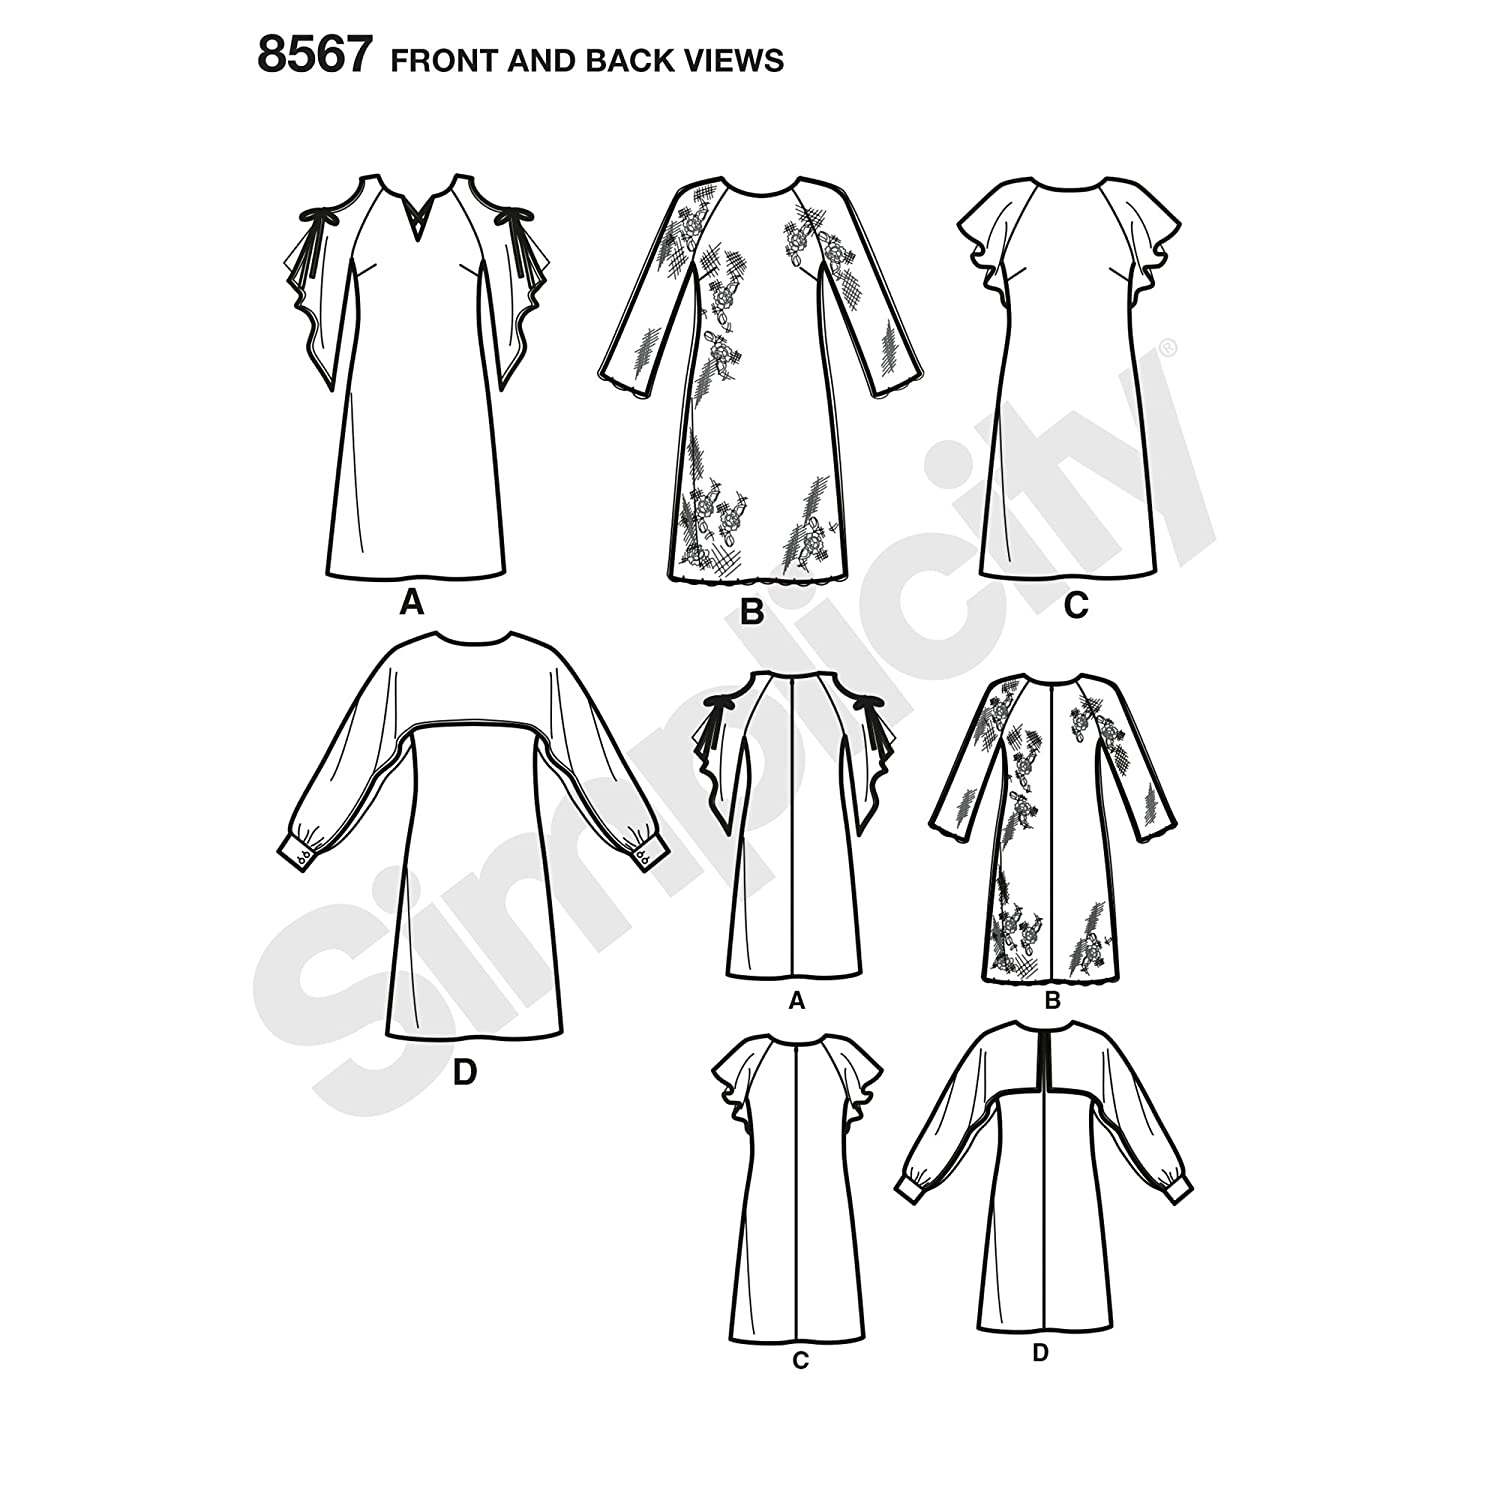 Amazon.com: Simplicity Creative Patterns US8567BB Girls BB (8 1/2-16 1/2): Posters & Prints